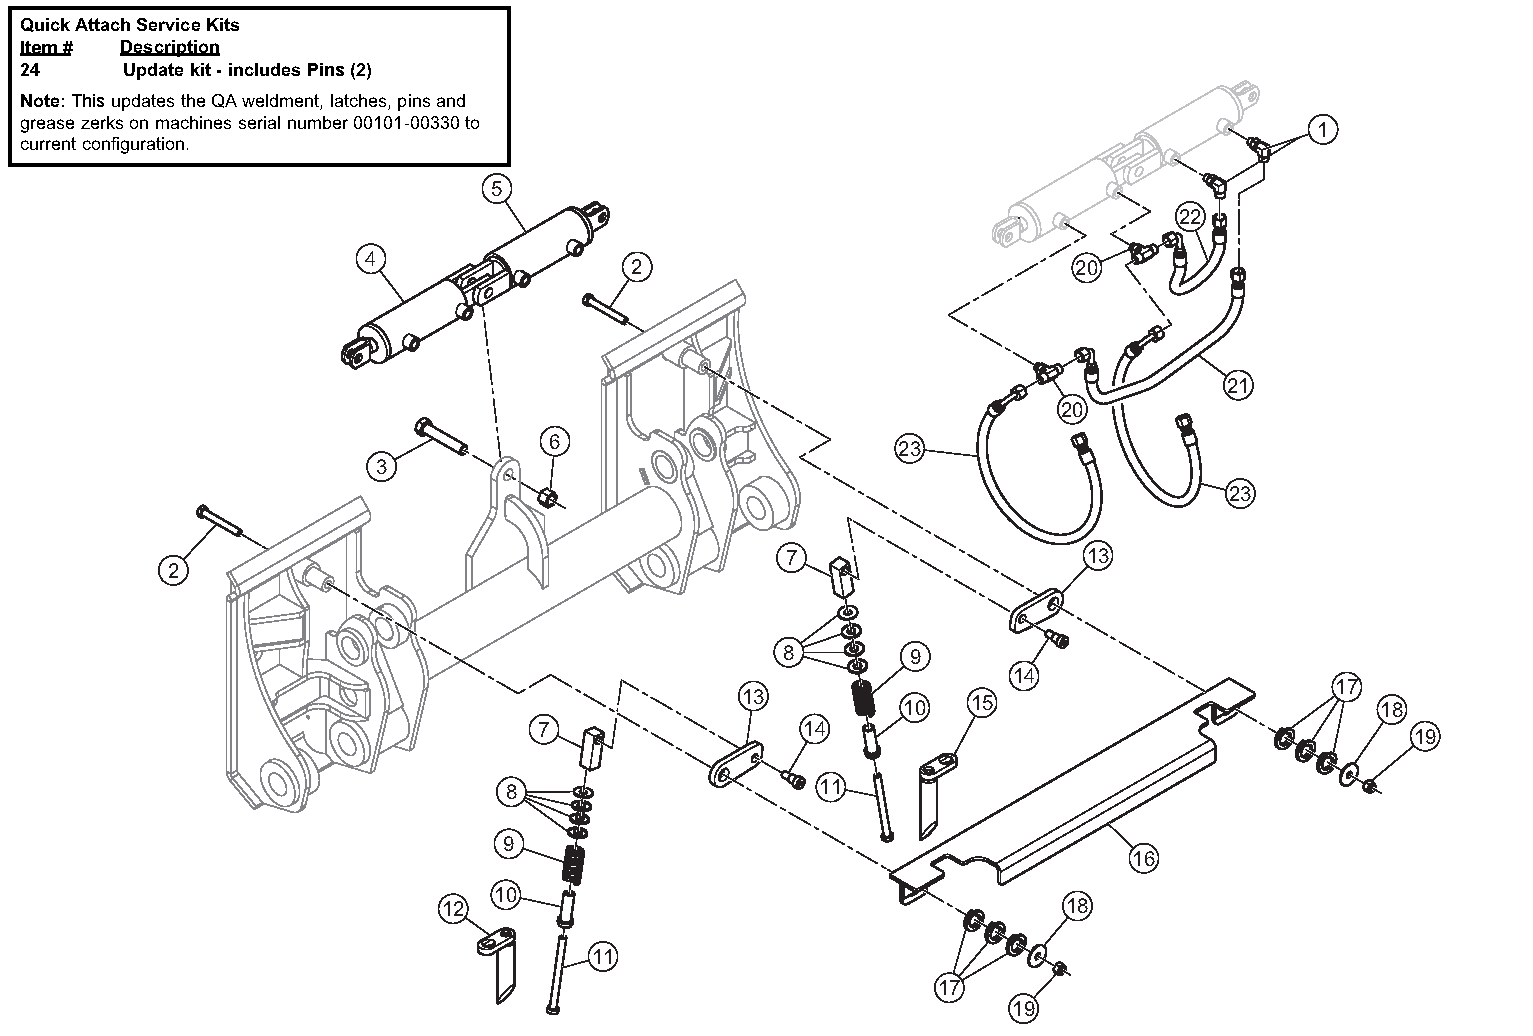 Diagram 26-A Power Quick Attach Assembly